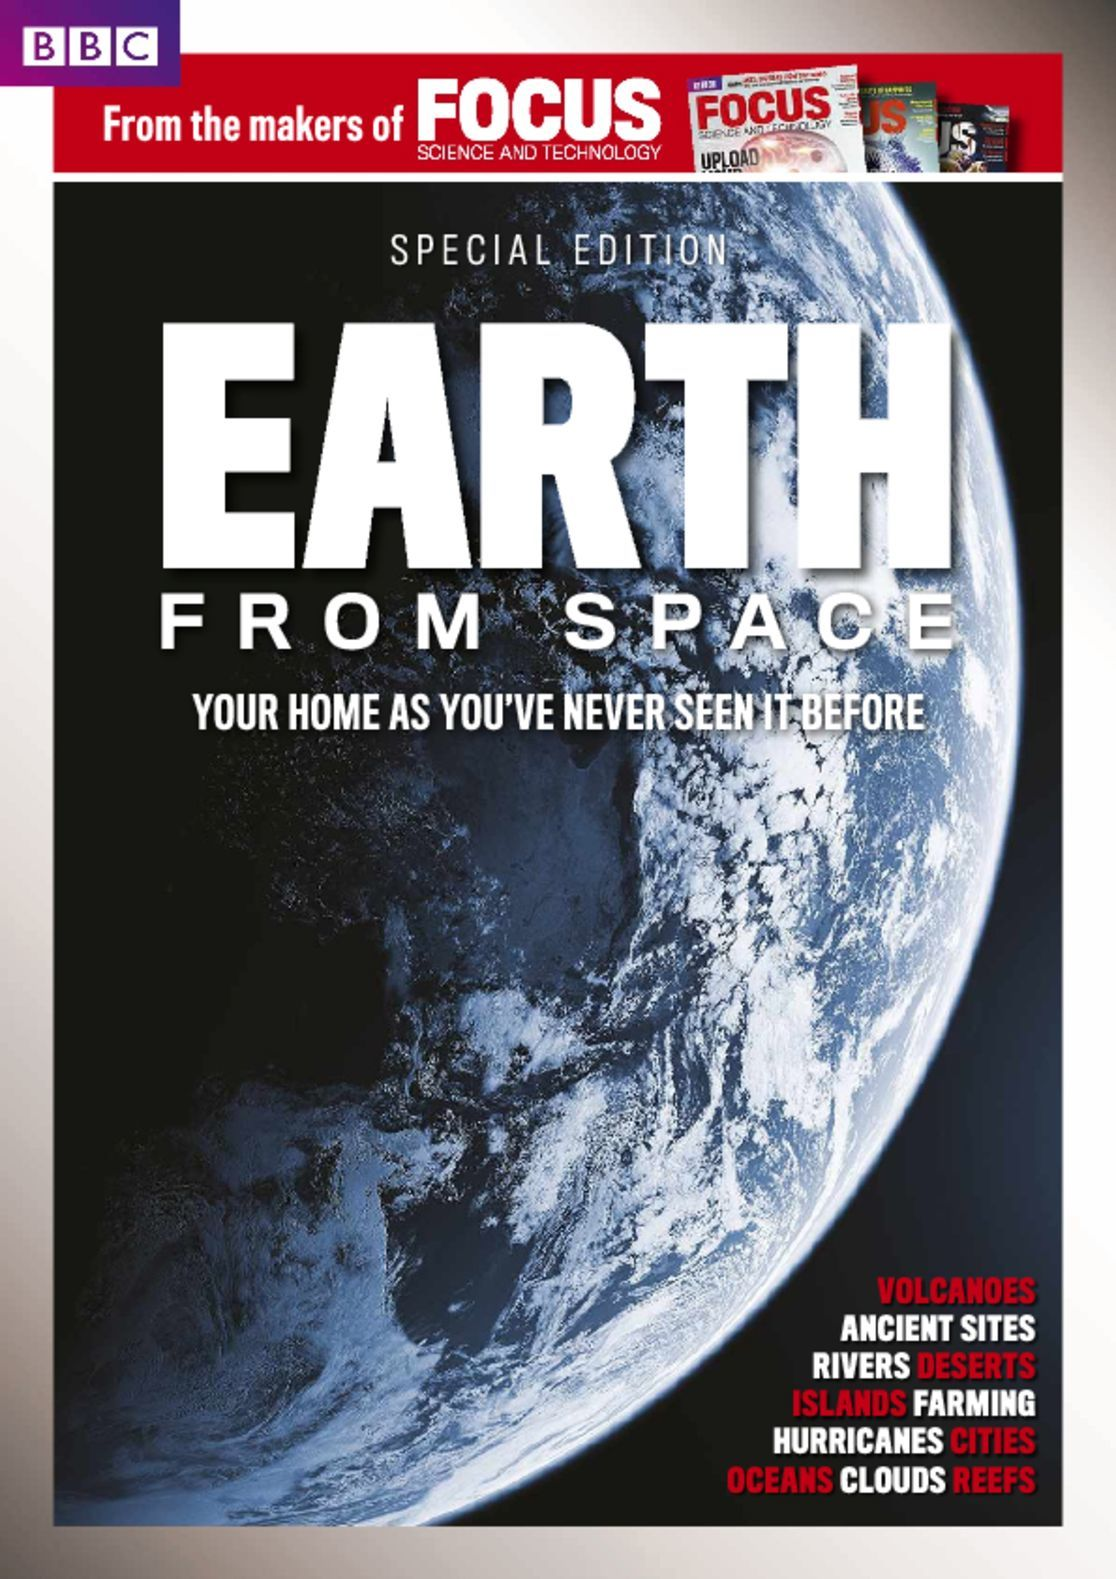 BBC Focus present Earth from Space Digital